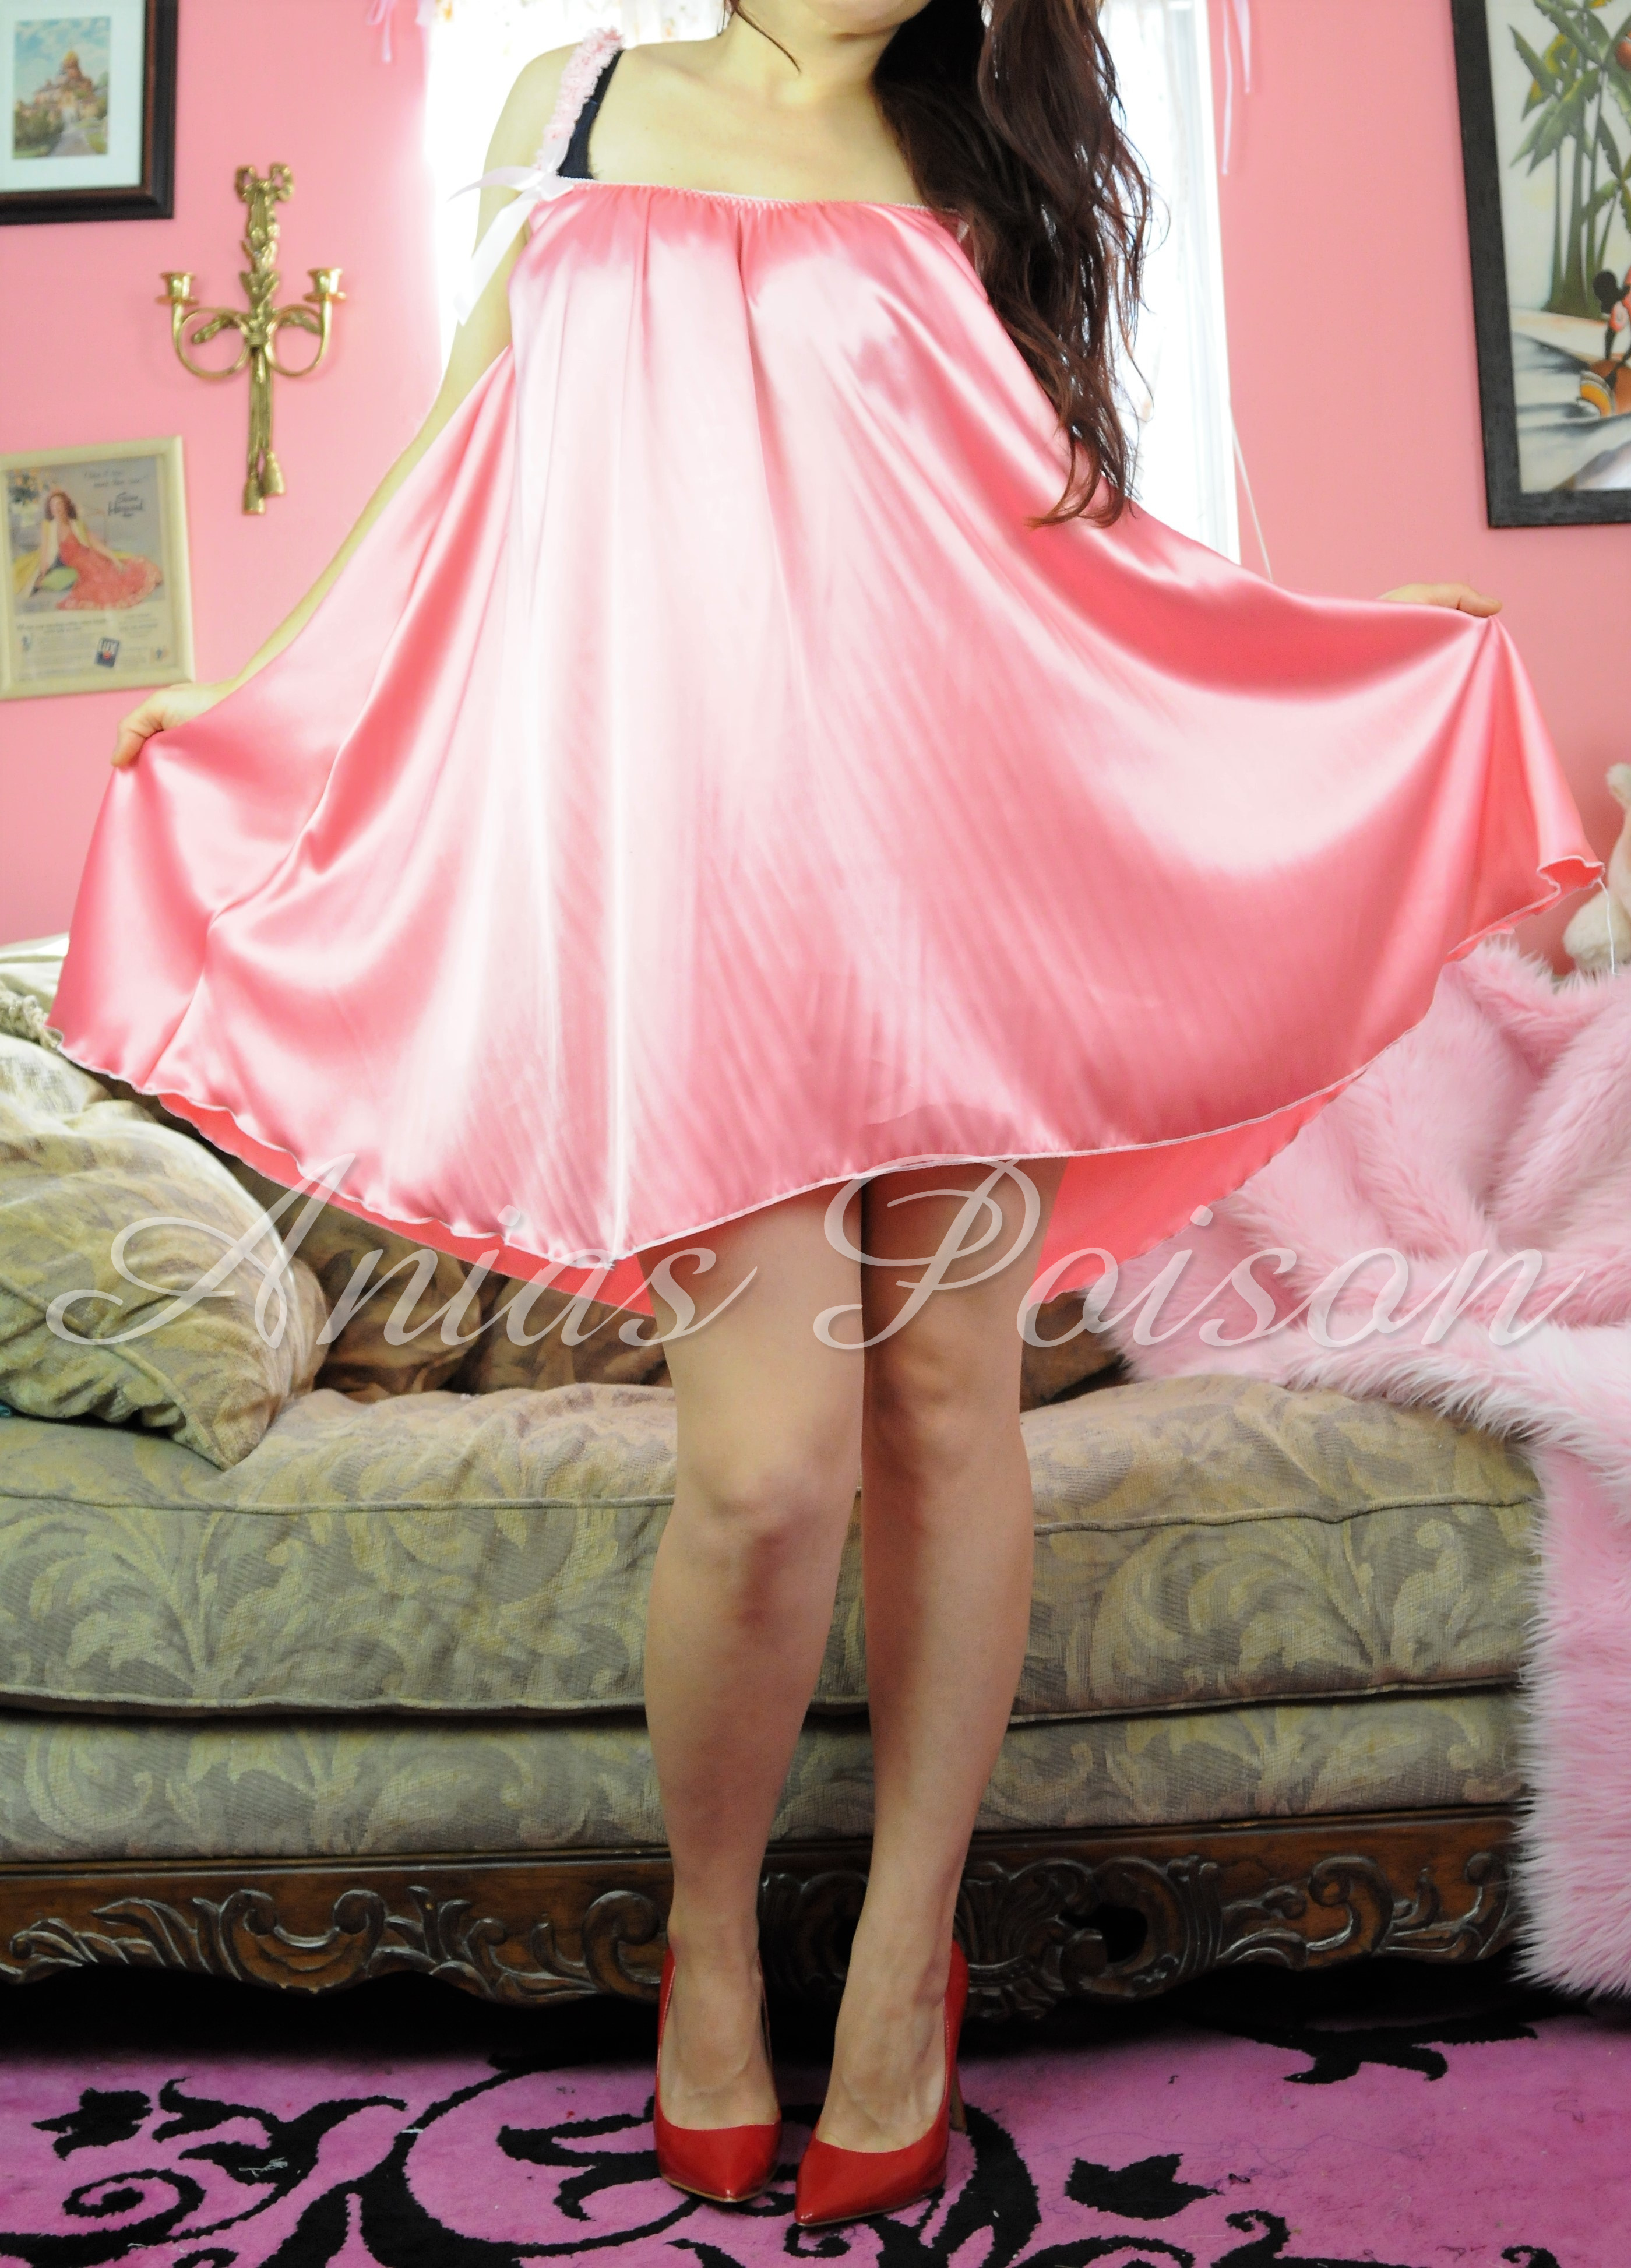 Vintage style Silky Satin Smooth and Shiny nightgown Nightie Peignoir MINI OS L XL